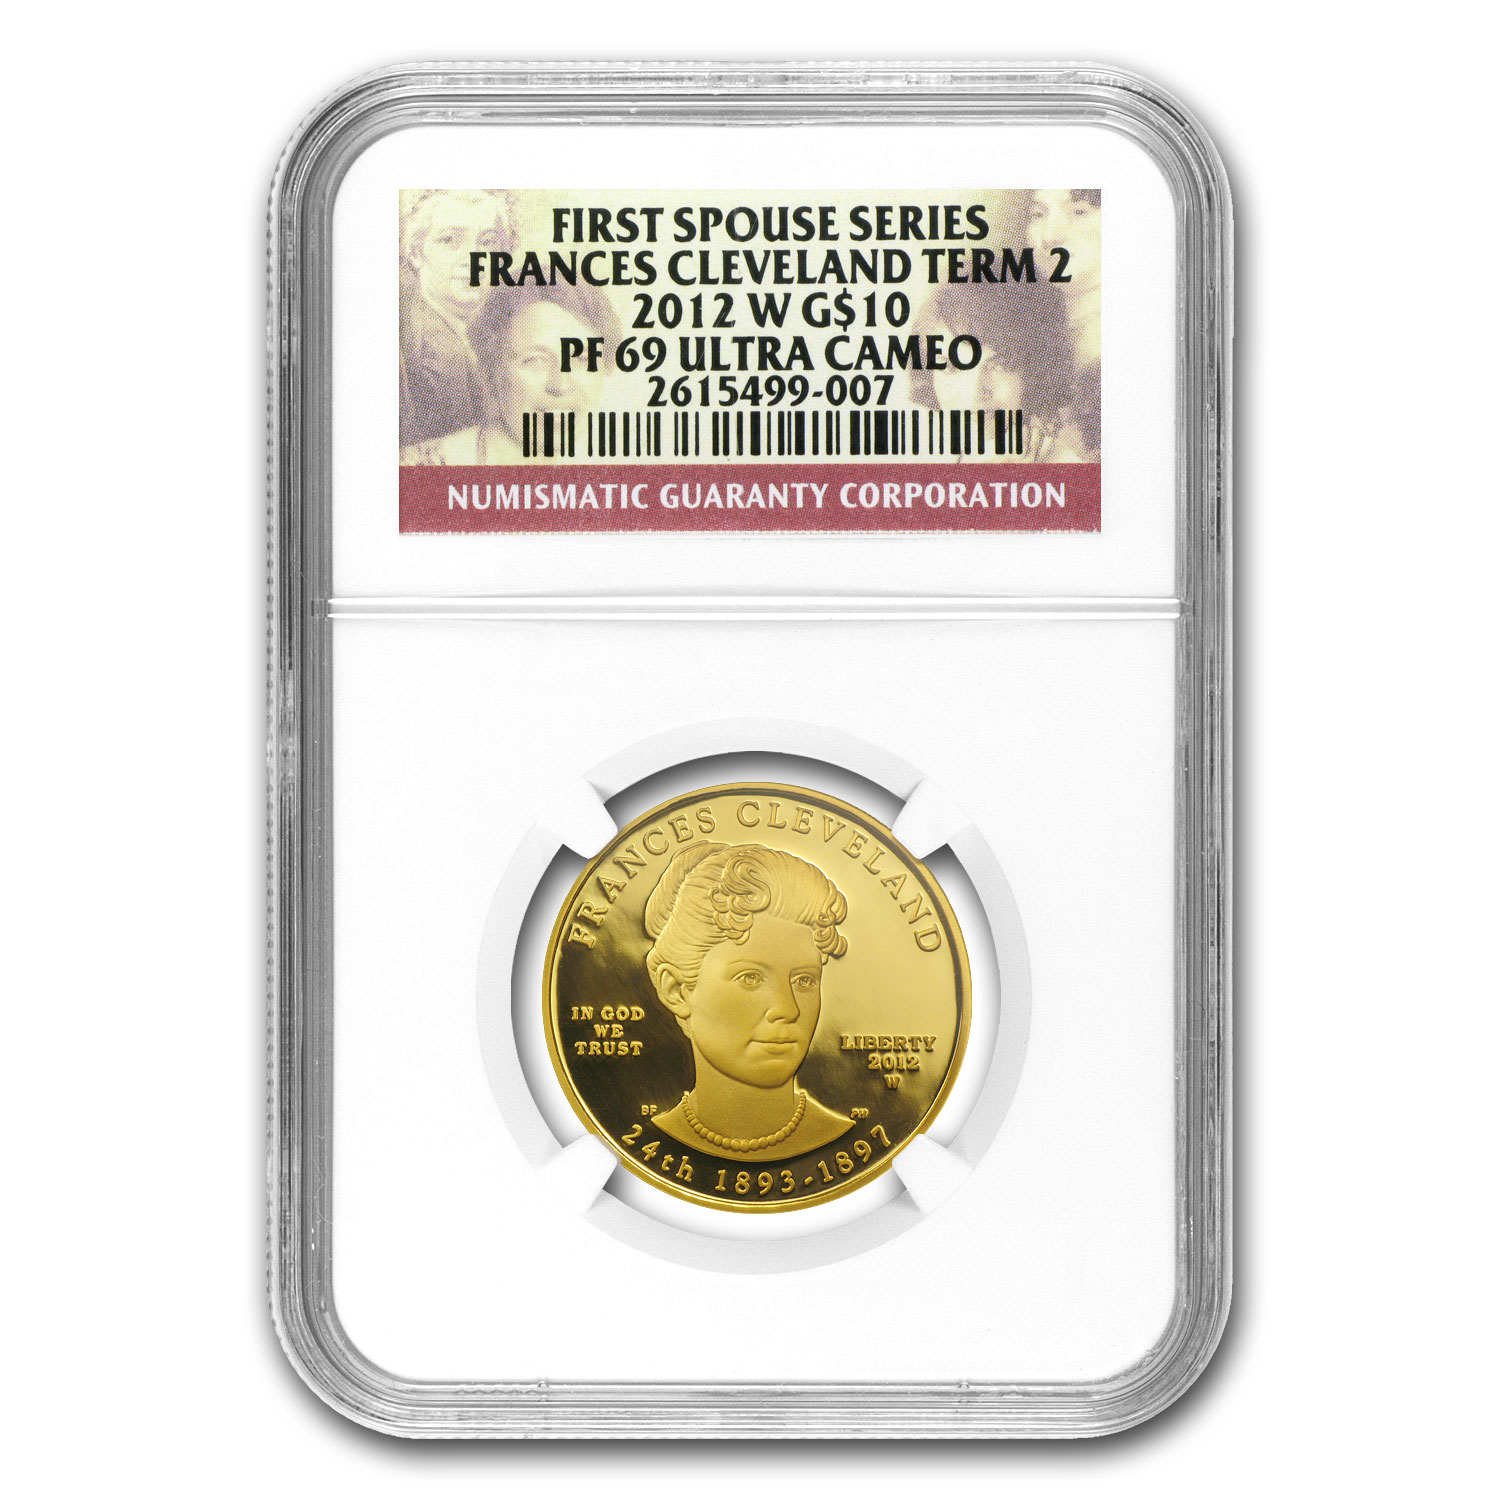 2012-W 1/2 oz Proof Gold Frances Cleveland 2nd Term PF-69 NGC